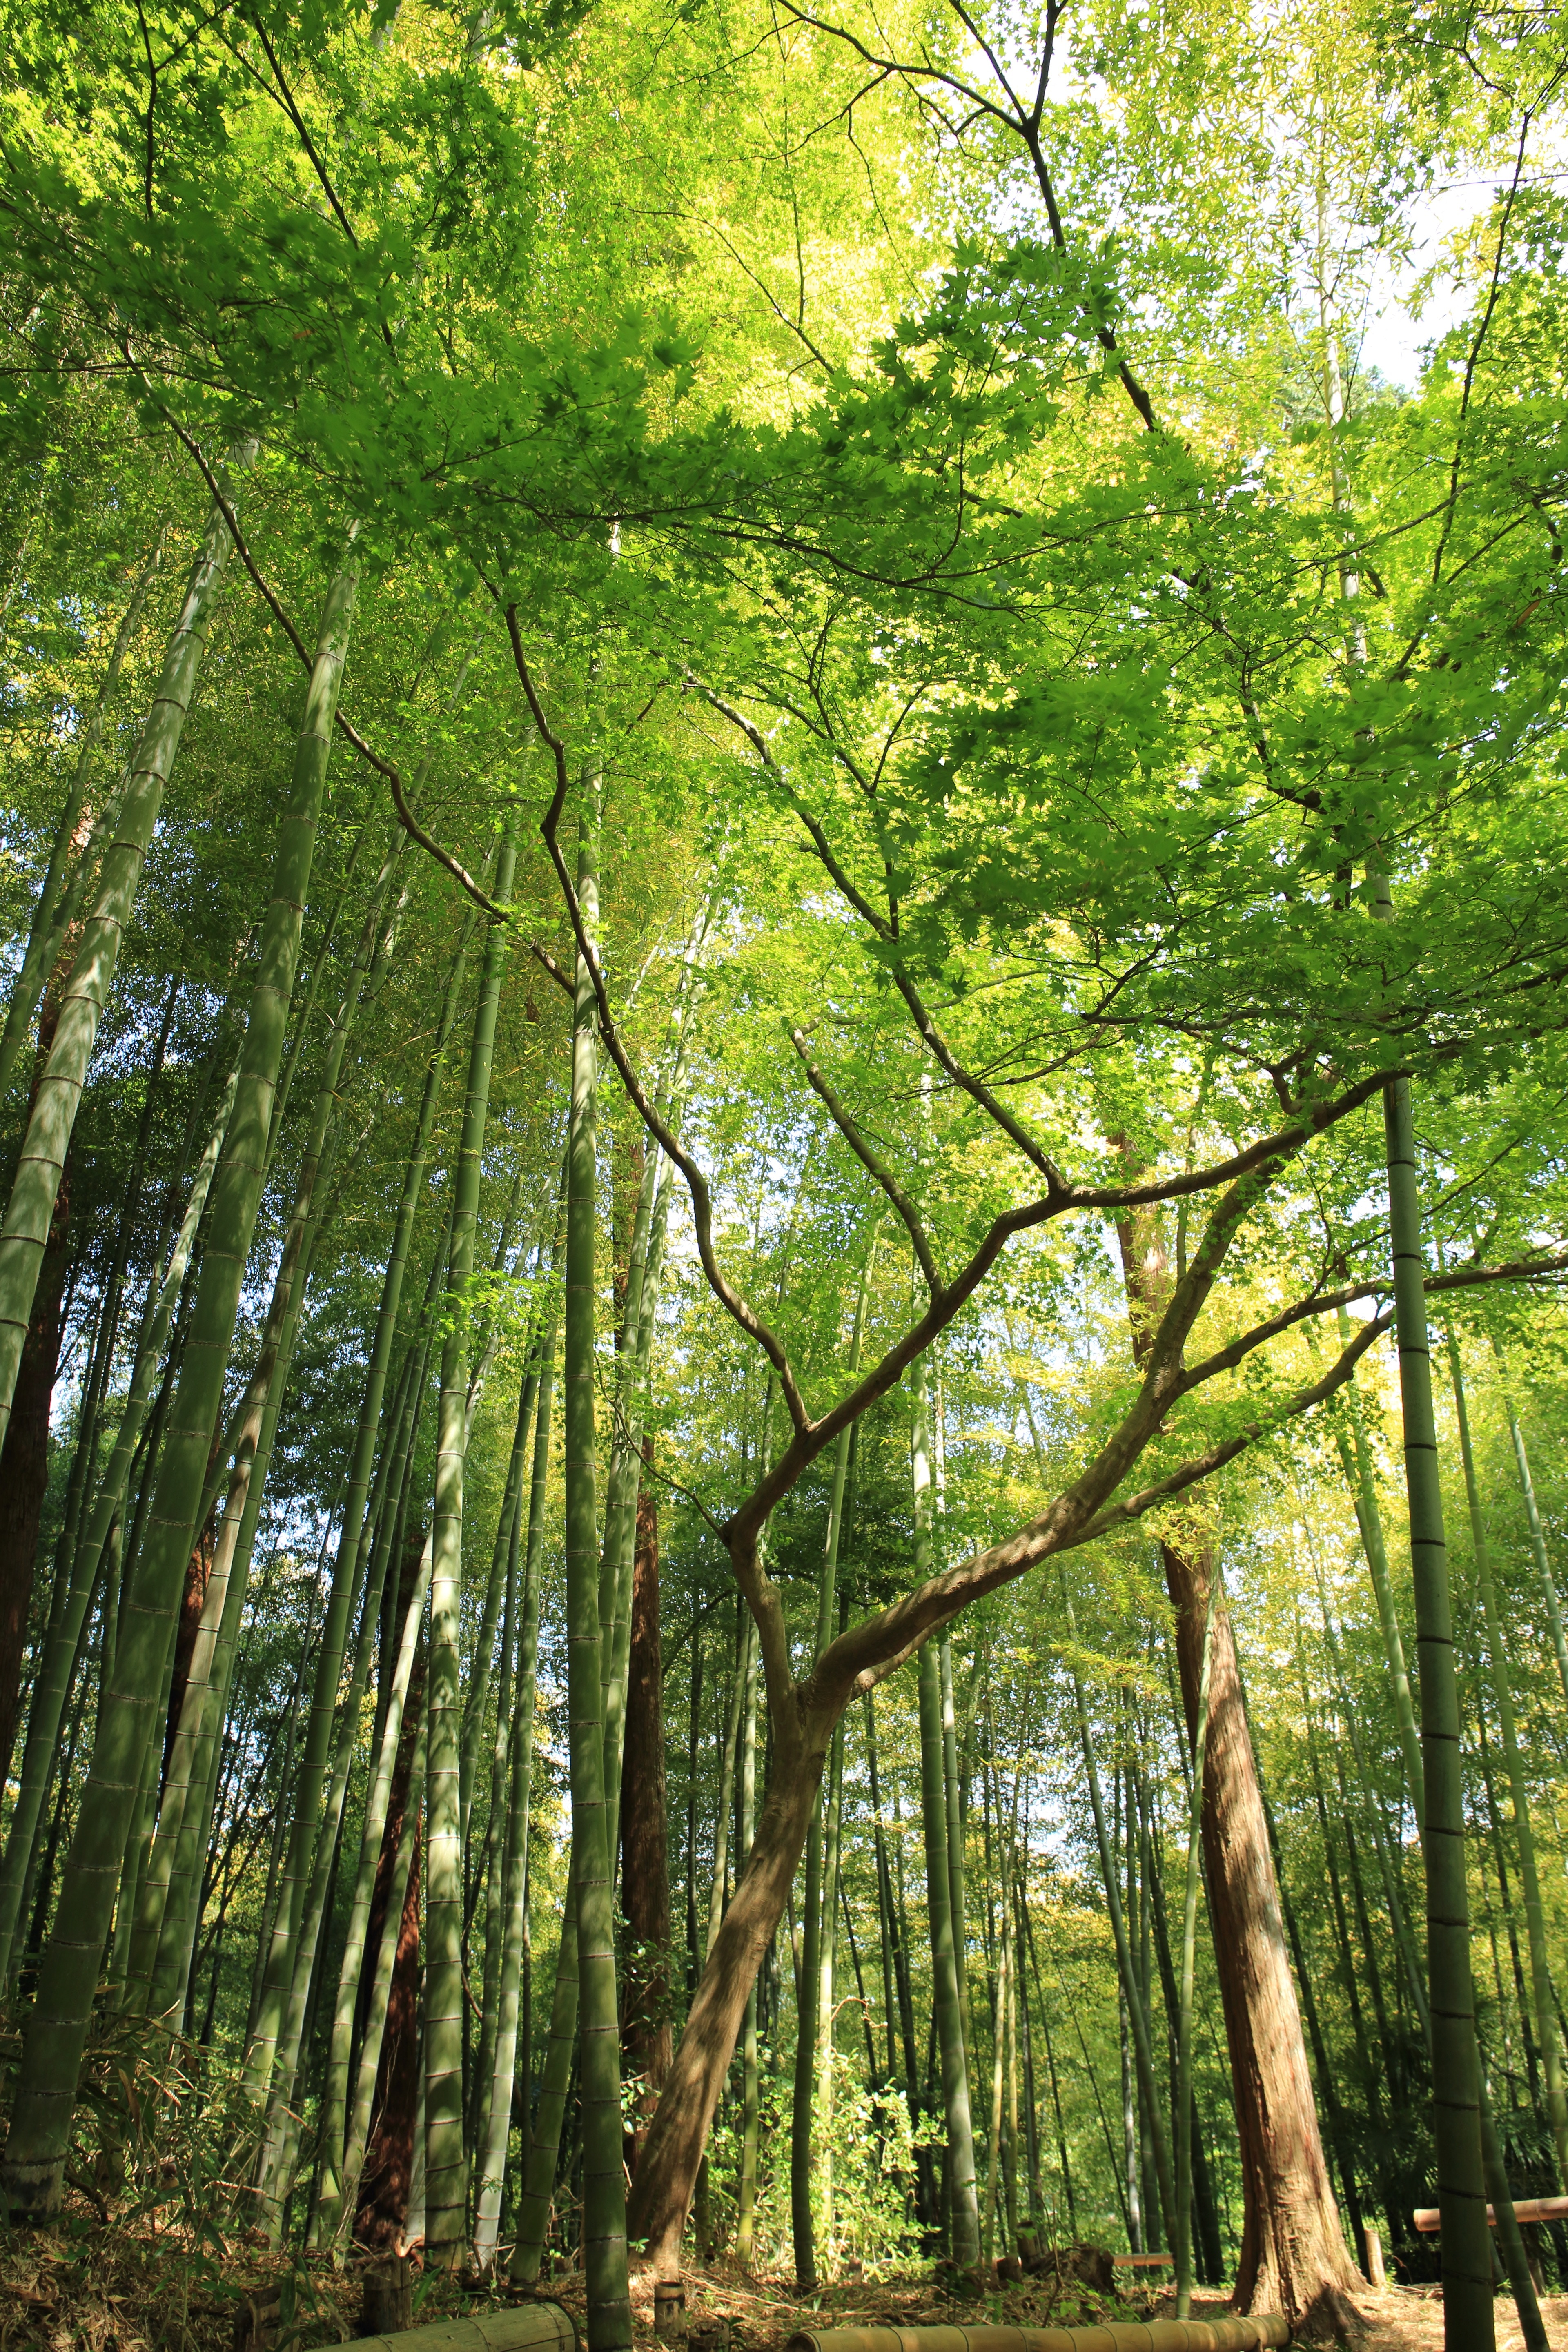 Paper use reduction to keep forests healthy